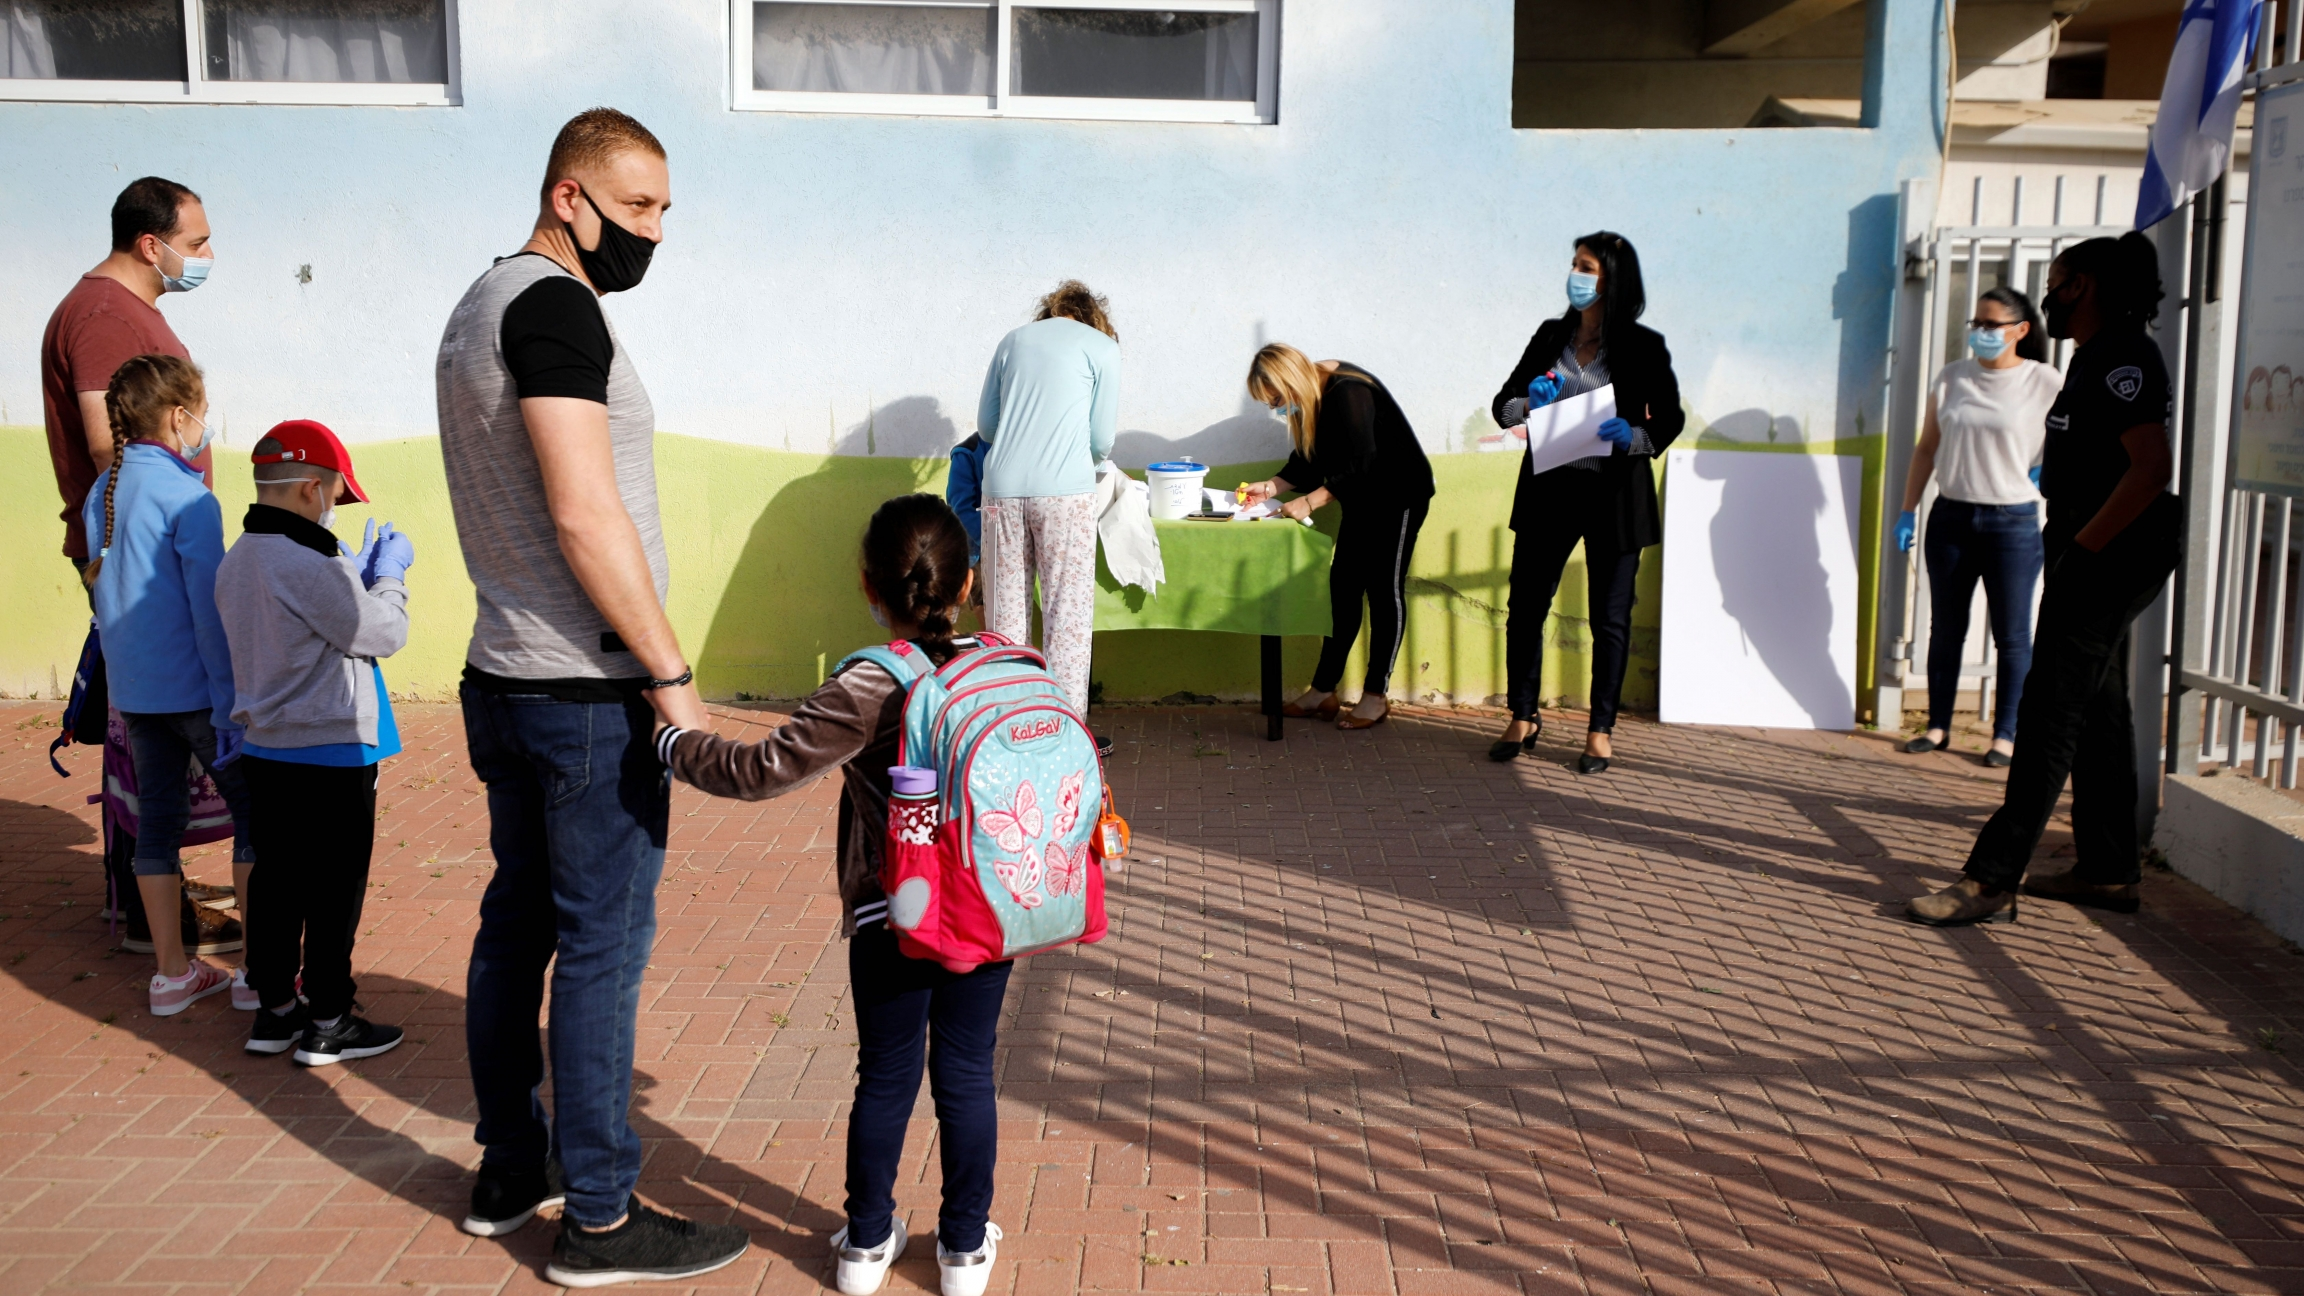 Parents wait with their children to enter their elementary school in Sderot as it reopens following the ease of restrictions preventing the spread of the coronavirus in Israel, May 3, 2020.